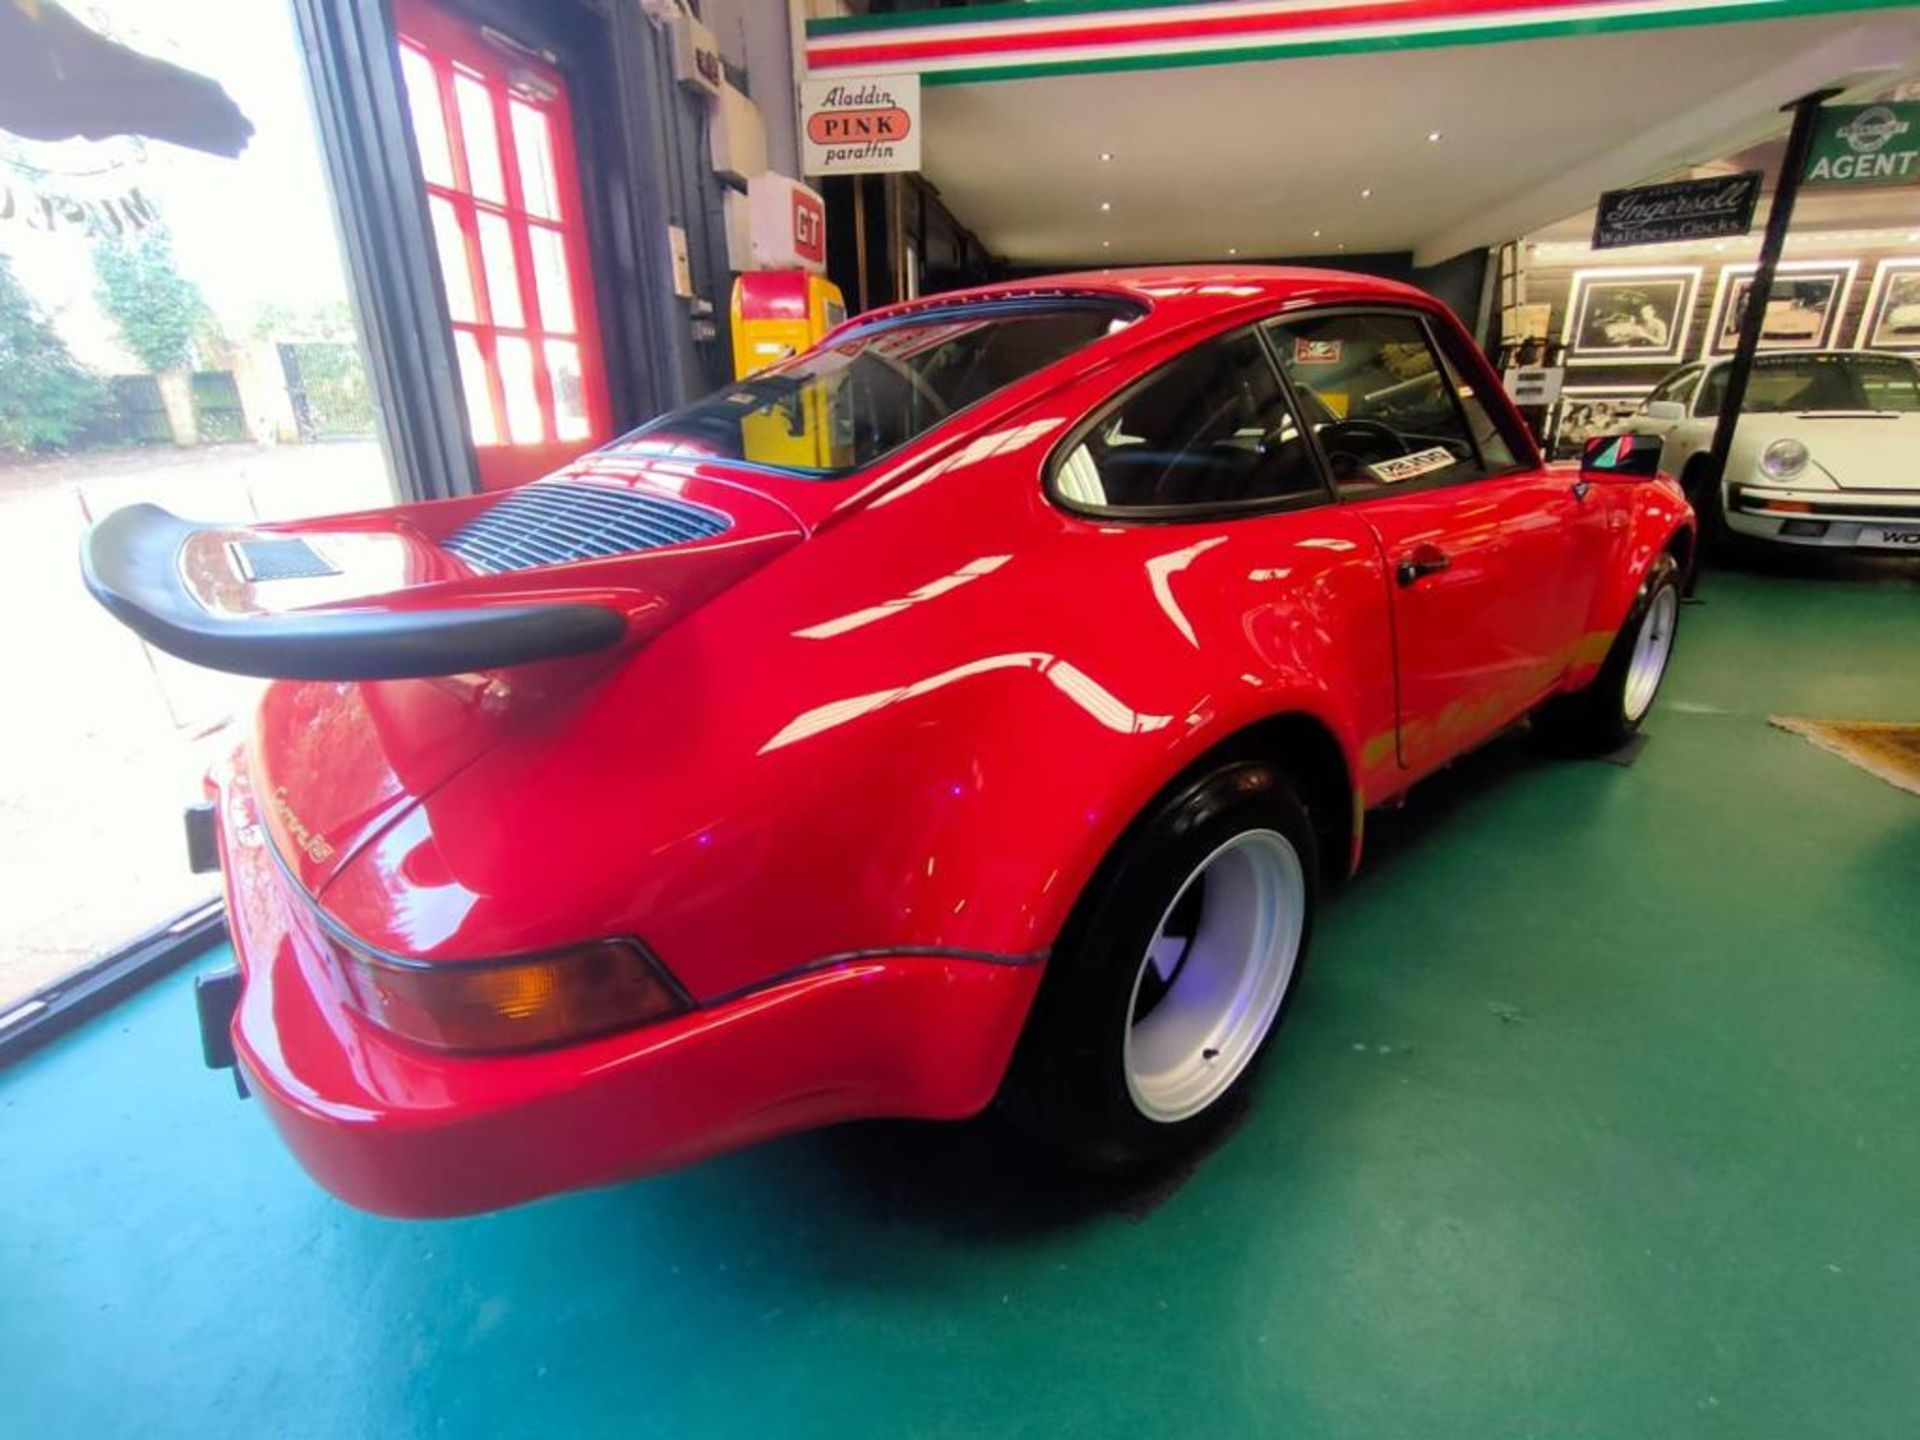 1980 Porsche 911 sc sport but has been fully rebuilt to be identical to a 1974 911 rsr *NO VAT* - Image 3 of 12